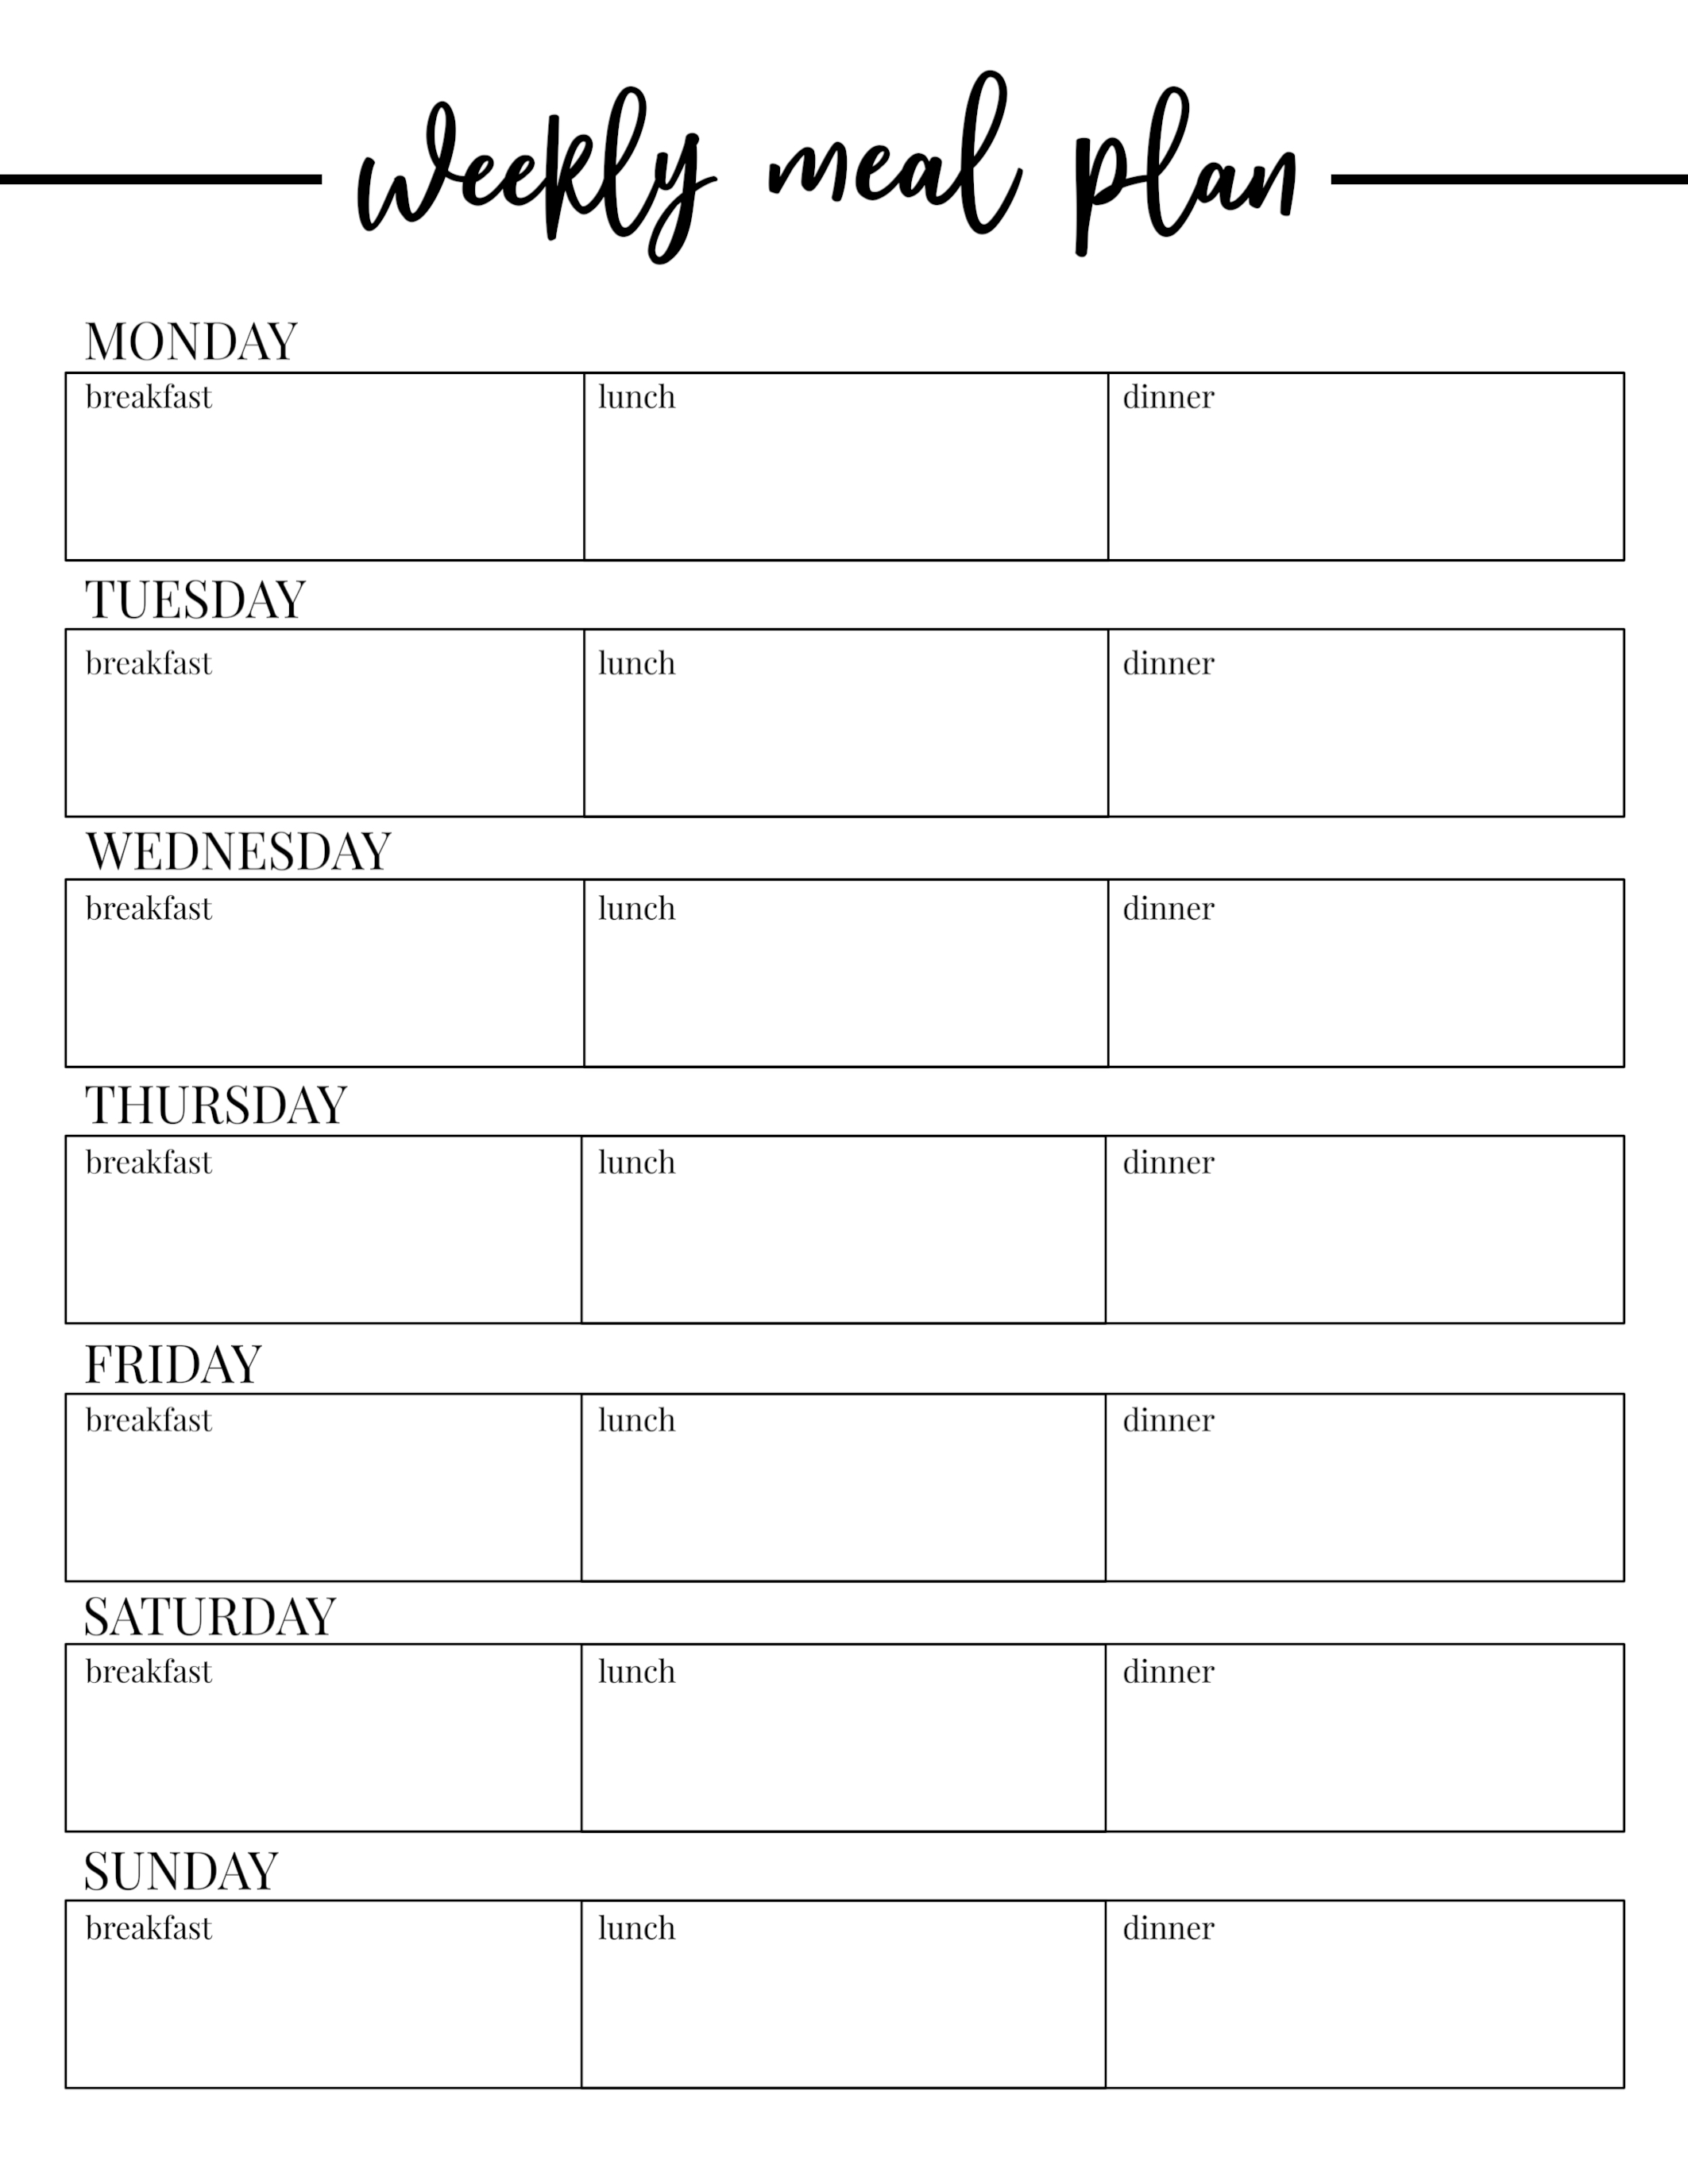 Free Printable Weekly Meal Plan Template Paper Trail Design